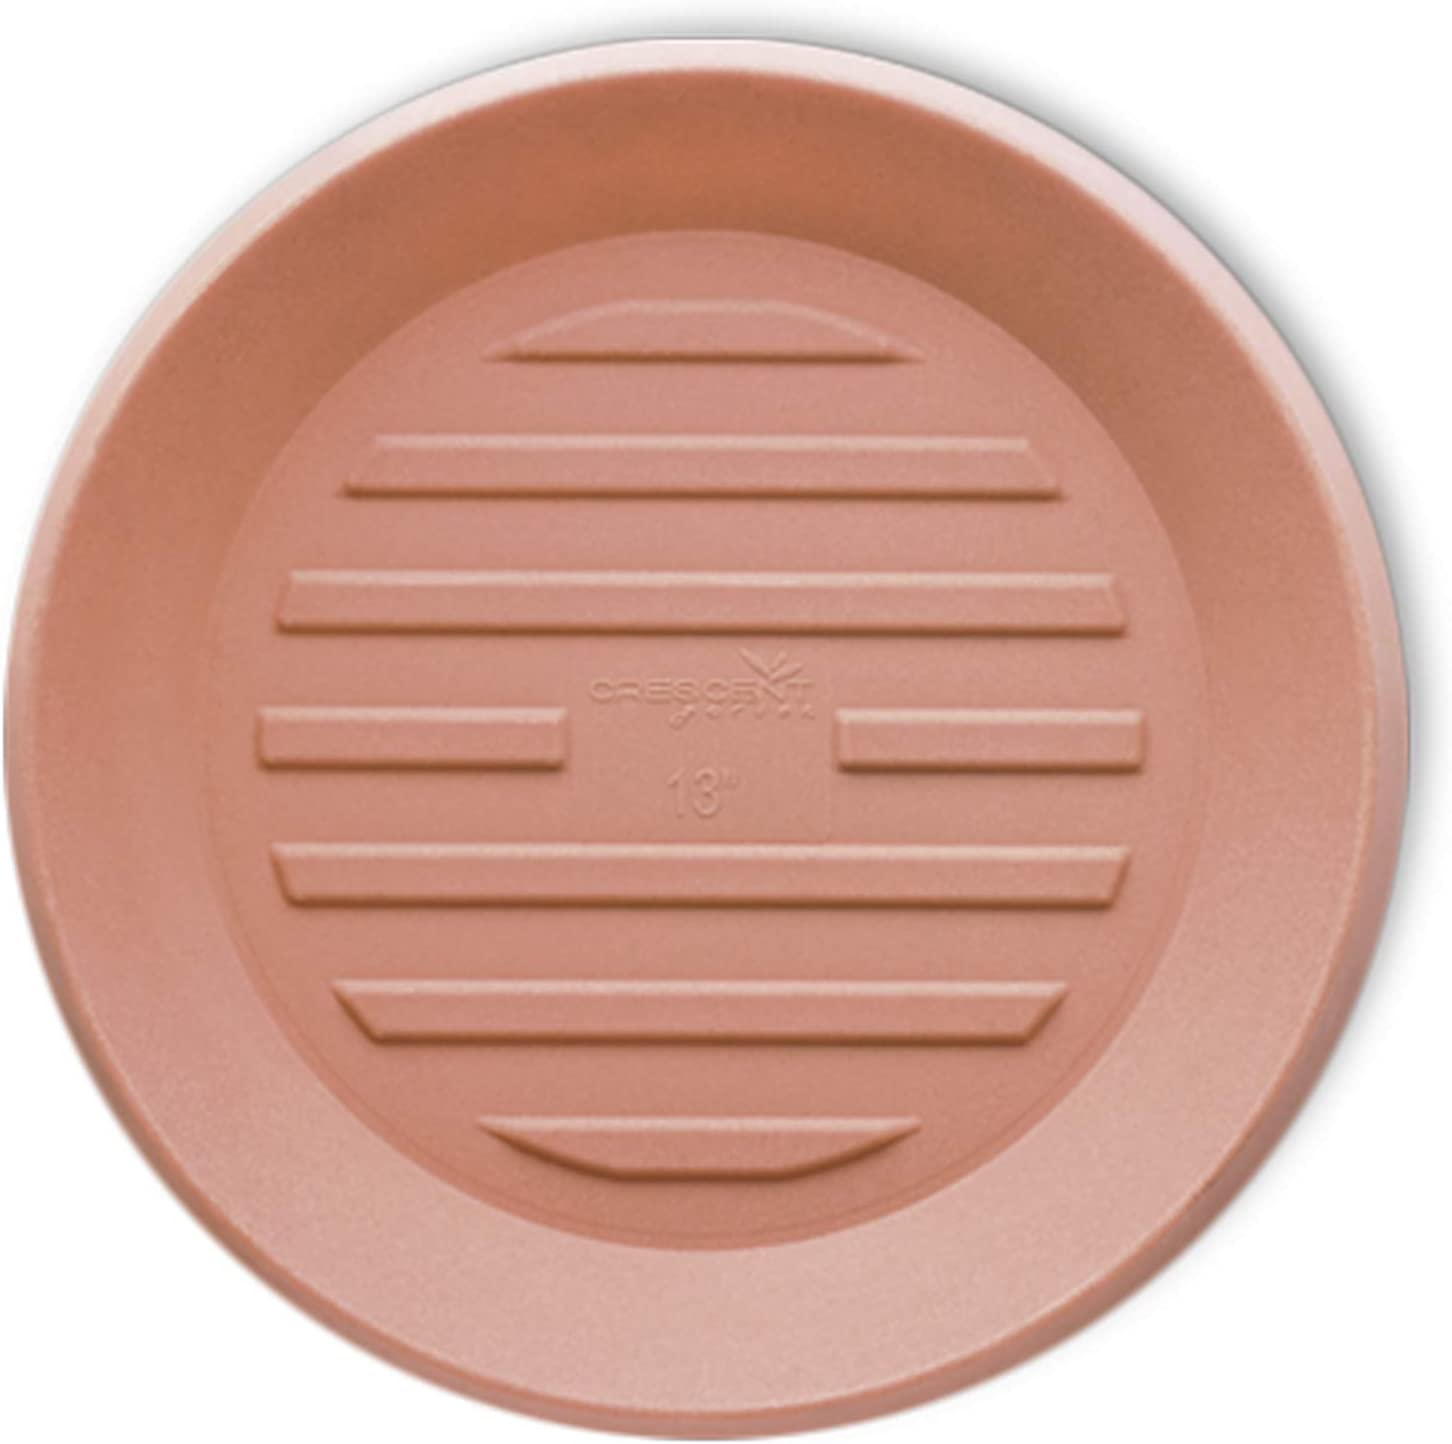 Crescent Garden Universal Round Saucer, Circular Saucer for Potted Plants, Weathered Terracotta (8-Inch Inside Diameter)